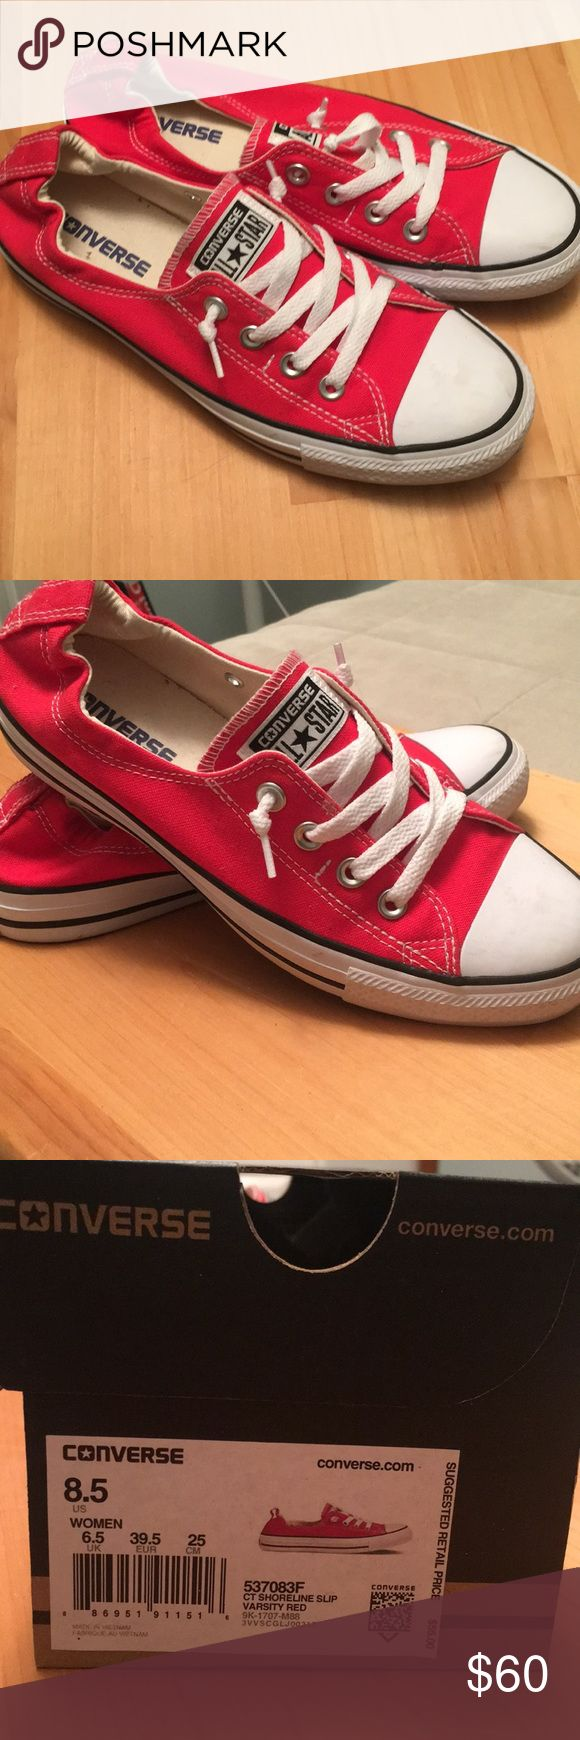 Red Converse Slip Ons Only worn one day inside for a Halloween costume. Super comfortable! Converse Shoes Sneakers